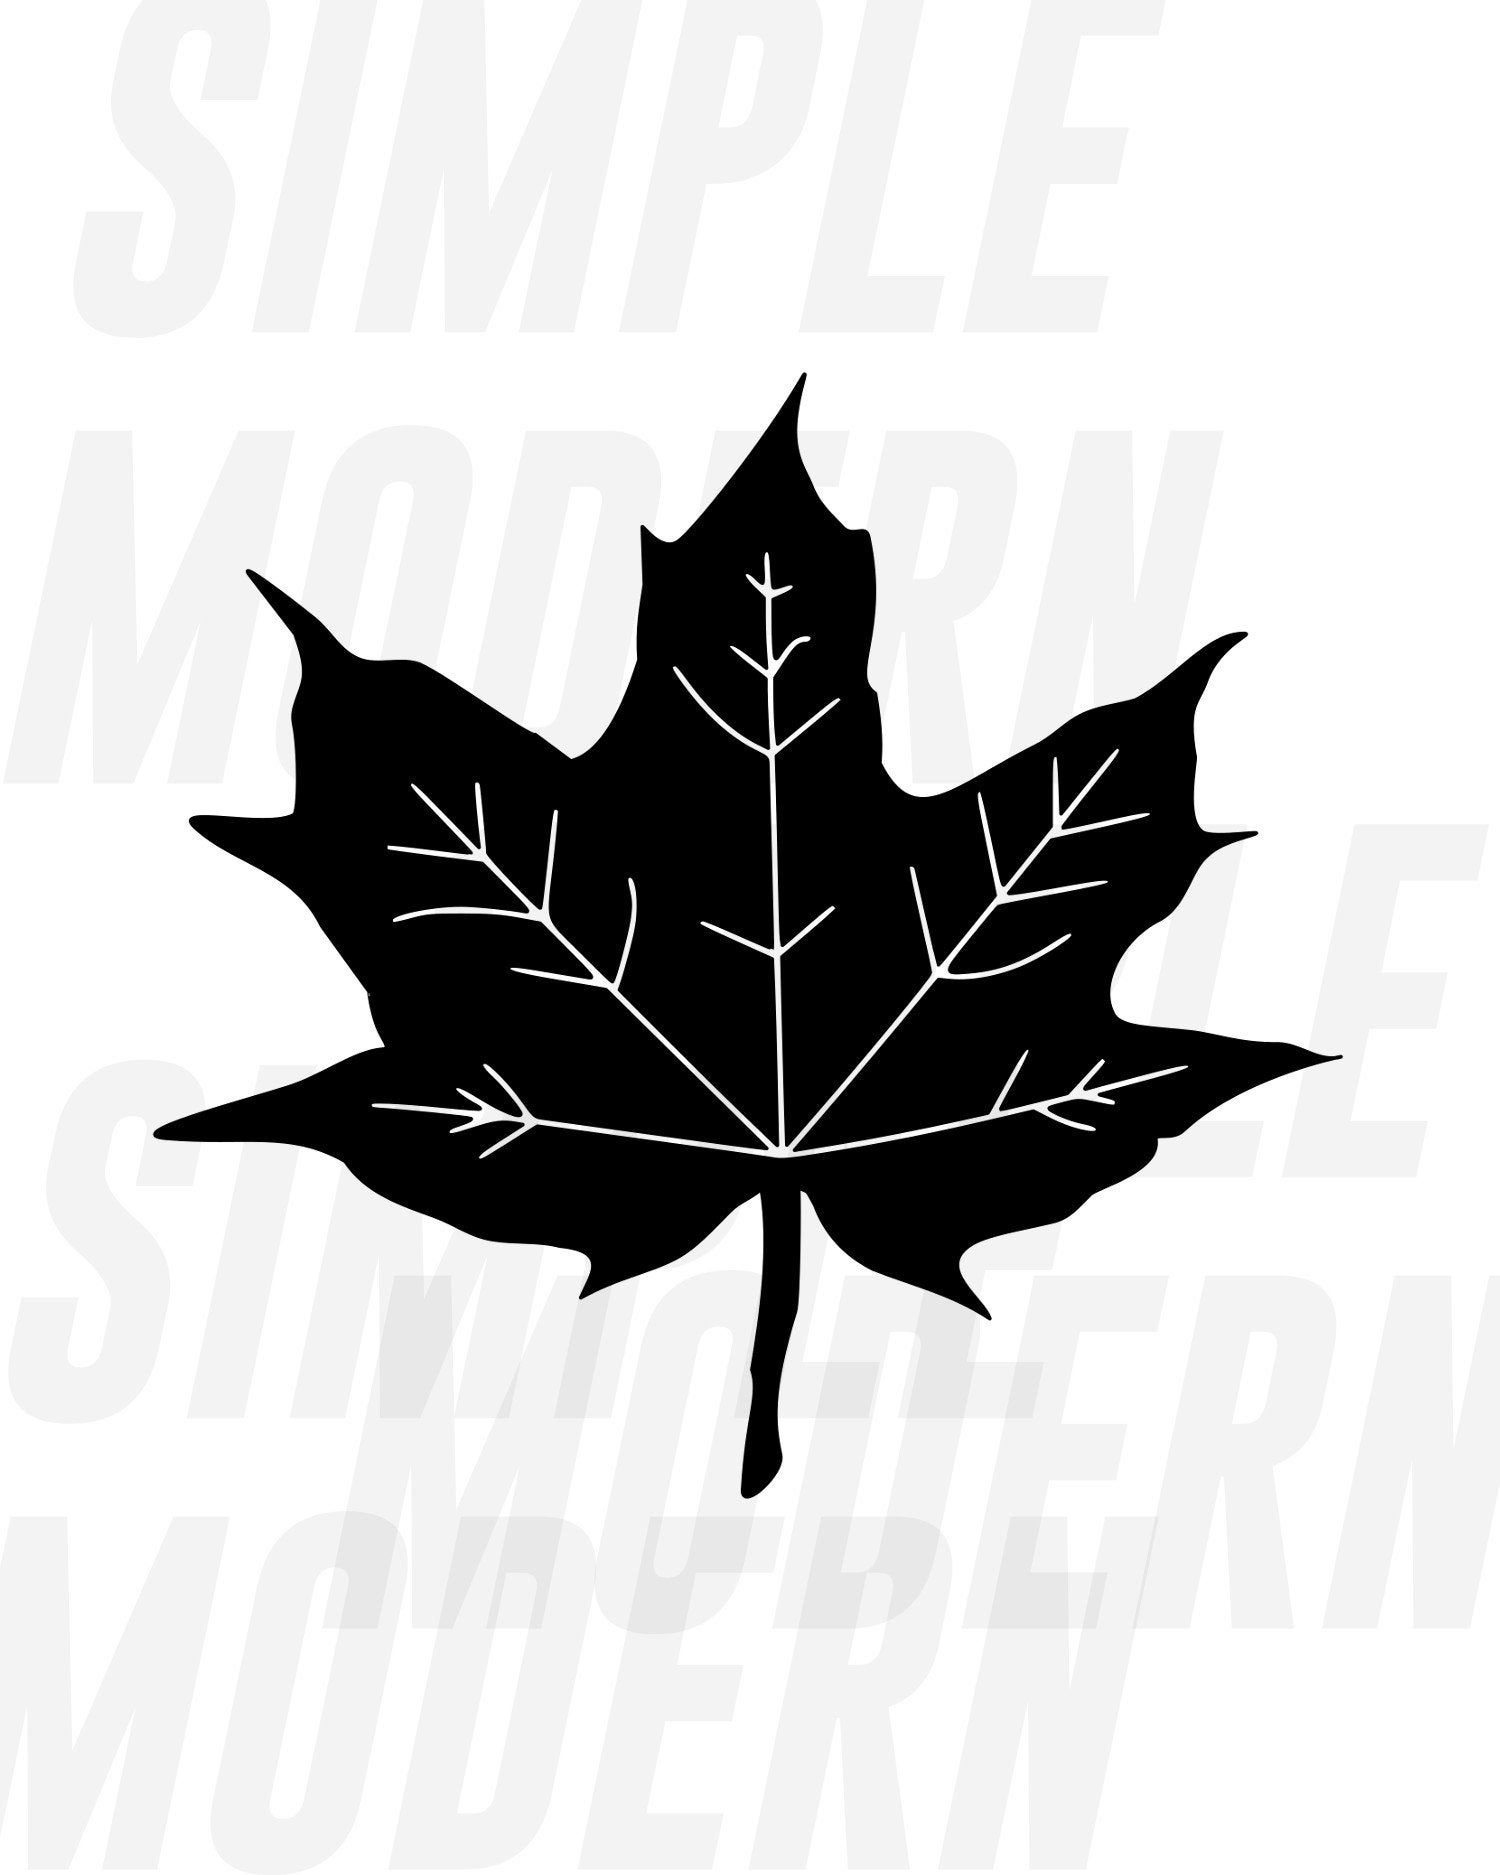 Fall Leaves Svg Files Autumn Maple Leaf Png Dxf Eps Vector Etsy Leaves Vector Autumn Leaves Printable Wall Art